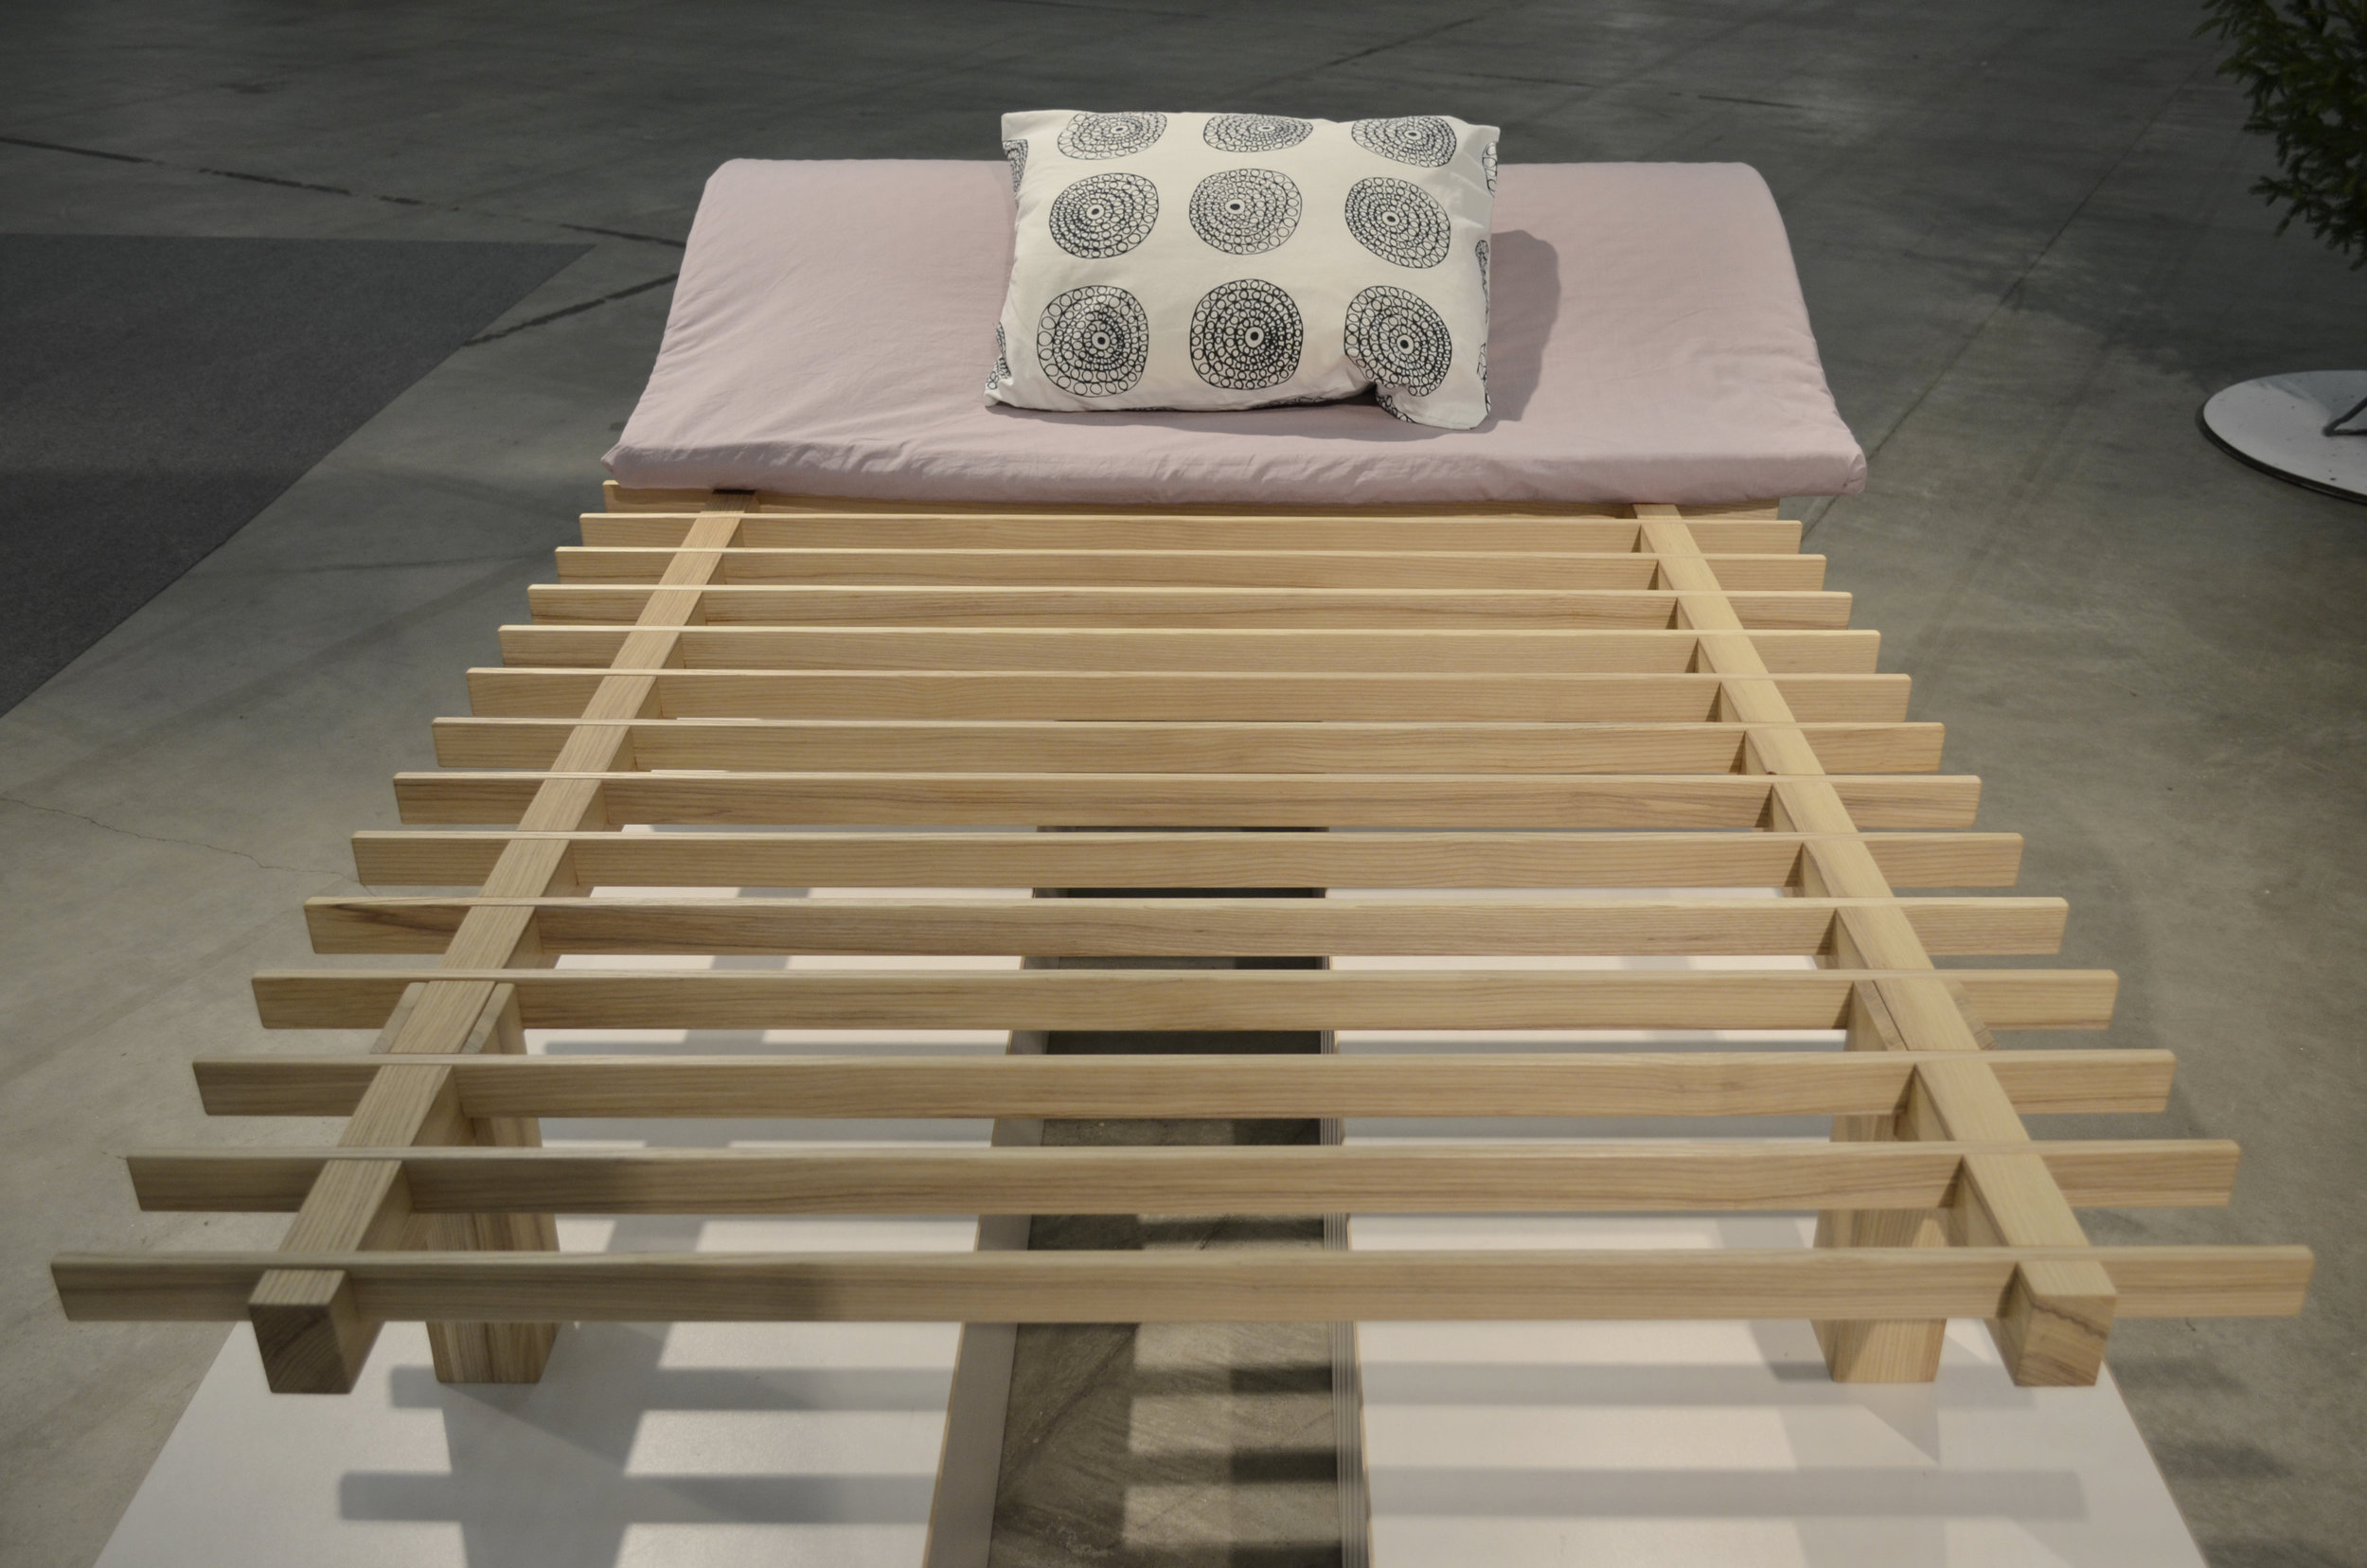 Aleksi Peltonen, SLEEPS-bed. Fair Foundations 1000€ award. For excellent use of wood: €1000 worth of PEFC-certified wood material granted by PEFC-Suomi and Fiskarsin Laatupuu Oy.